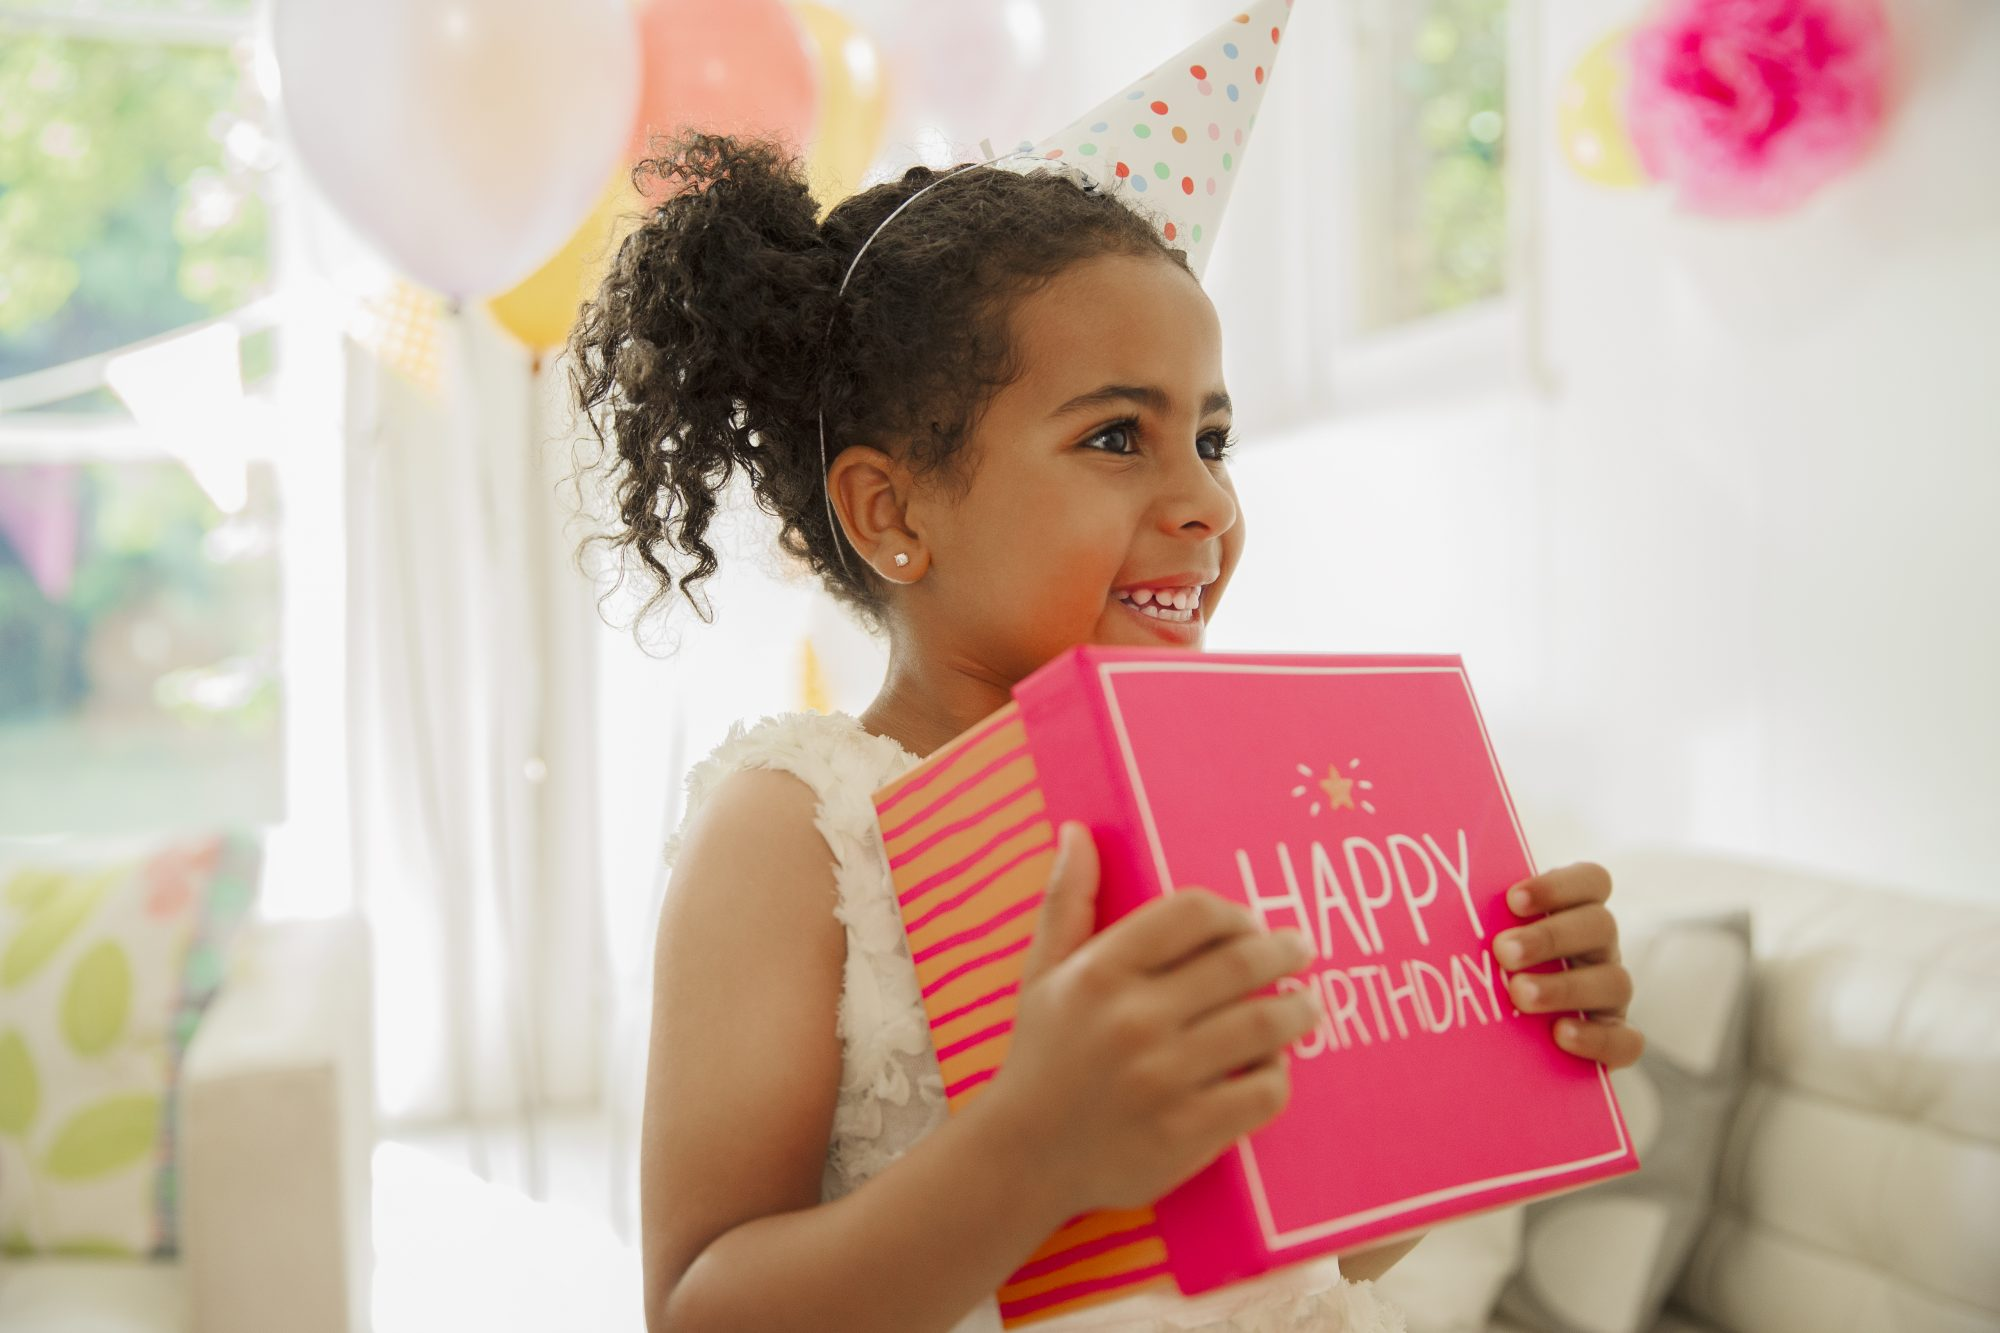 Child Holding Pink Birthday Gift Box